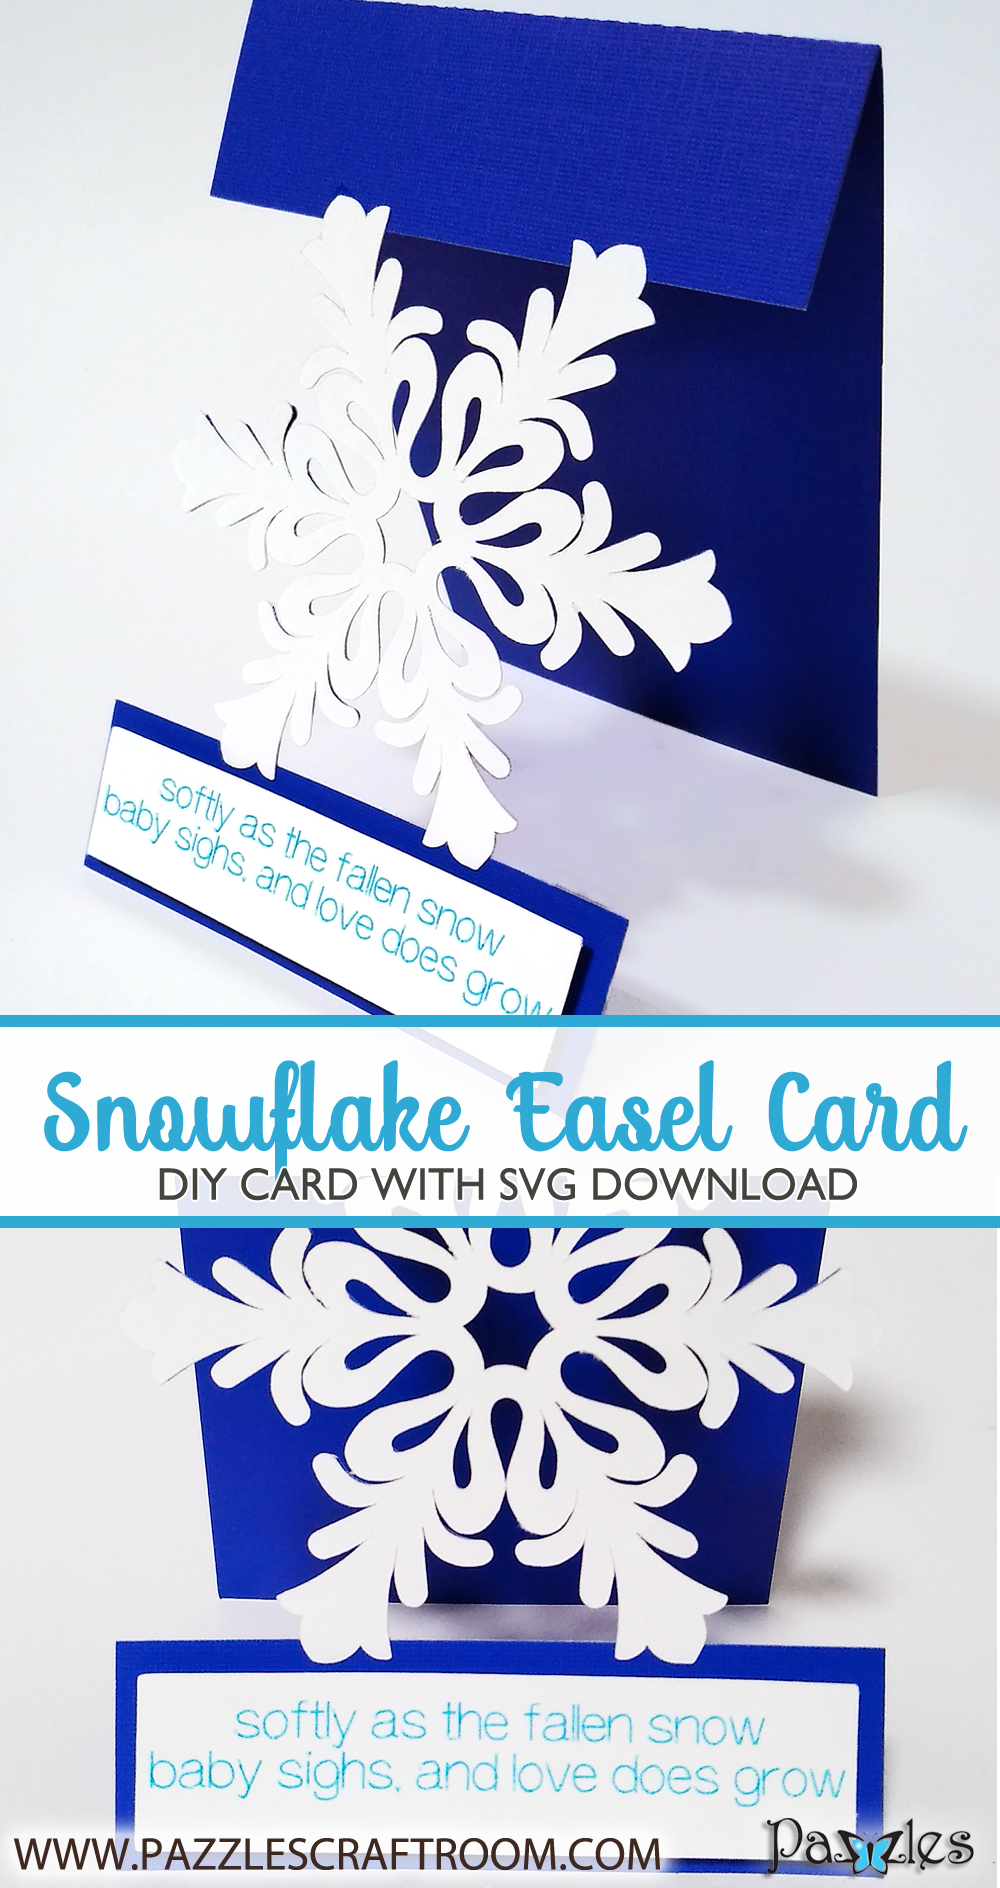 Pazzles DIY Snowflake Easel Card with instant SVG download. Compatible with all major electronic cutters including Pazzles Inspiration, Cricut, and Silhouette Cameo. Design by Renee Smart.